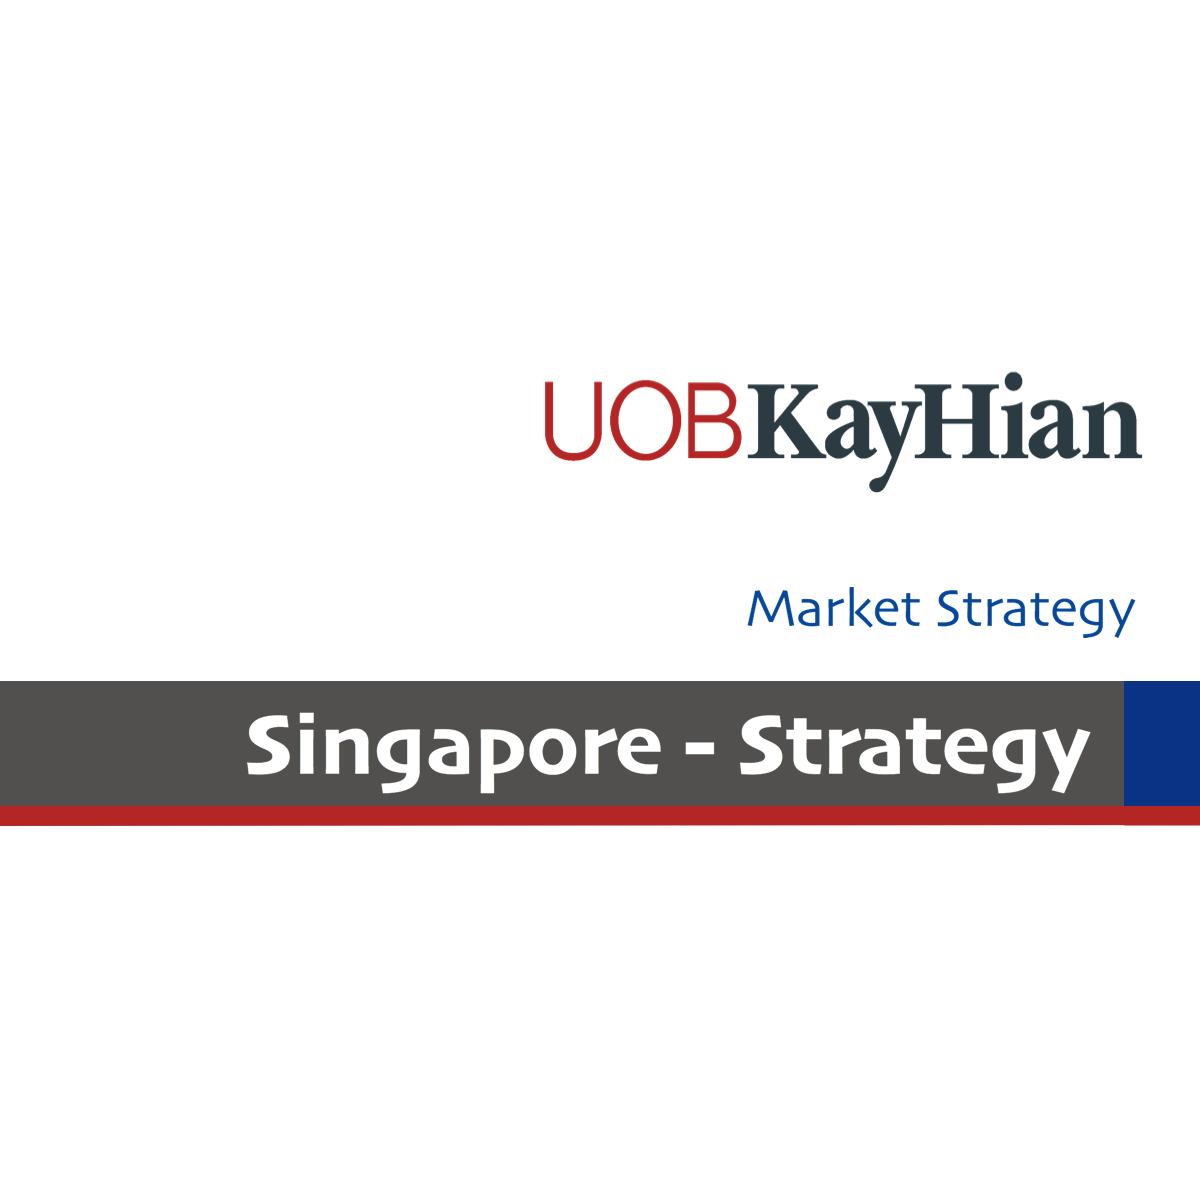 Strategy - Singapore - UOB Kay Hian Research 2018-07-13: A More Challenging Landscape To Navigate